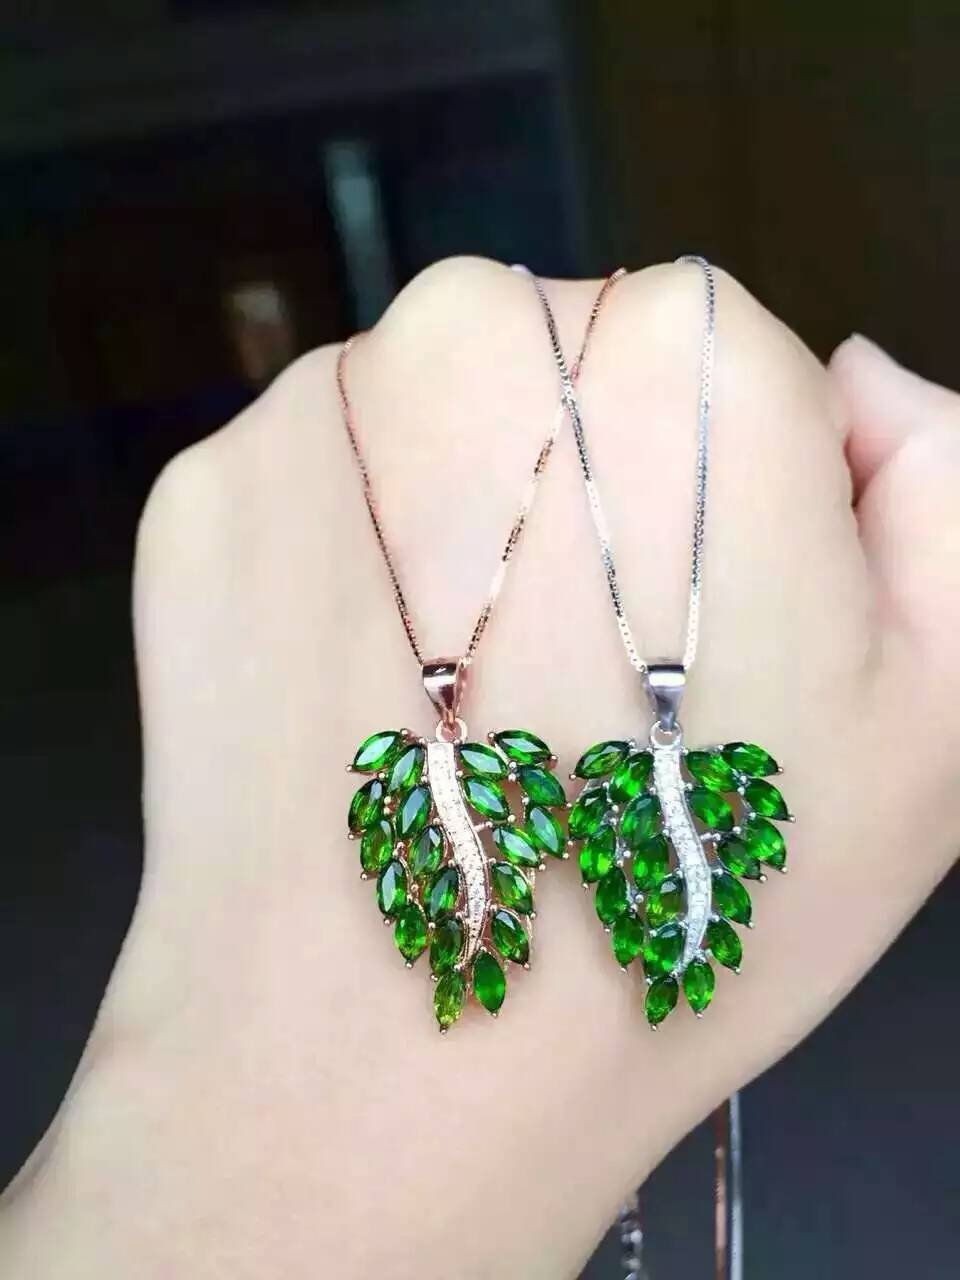 natural green diopside pendant S925 silver Natural gemstone Pendant Necklace trendy big Luxury Flower Leaves women party jewelrynatural green diopside pendant S925 silver Natural gemstone Pendant Necklace trendy big Luxury Flower Leaves women party jewelry